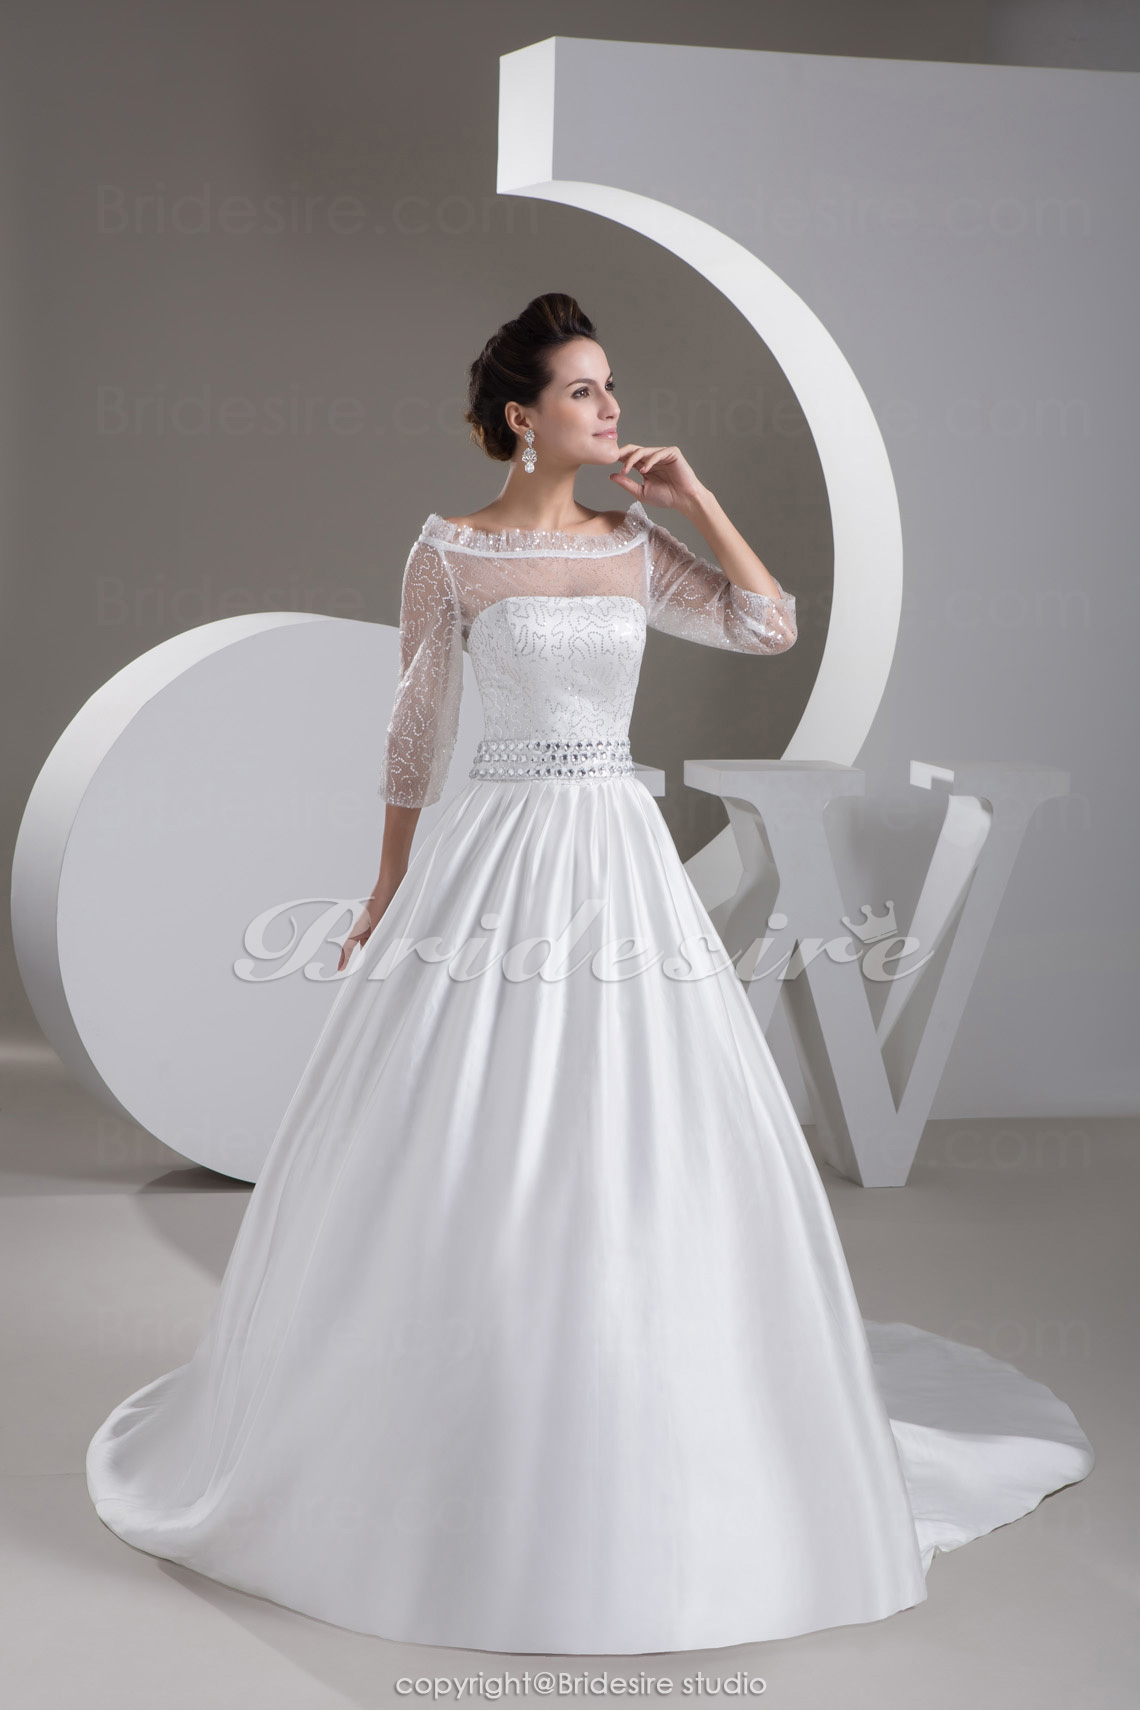 Ball Gown Off-the-shoulder Court Train 3/4 Length Sleeve Satin Tulle Wedding Dress